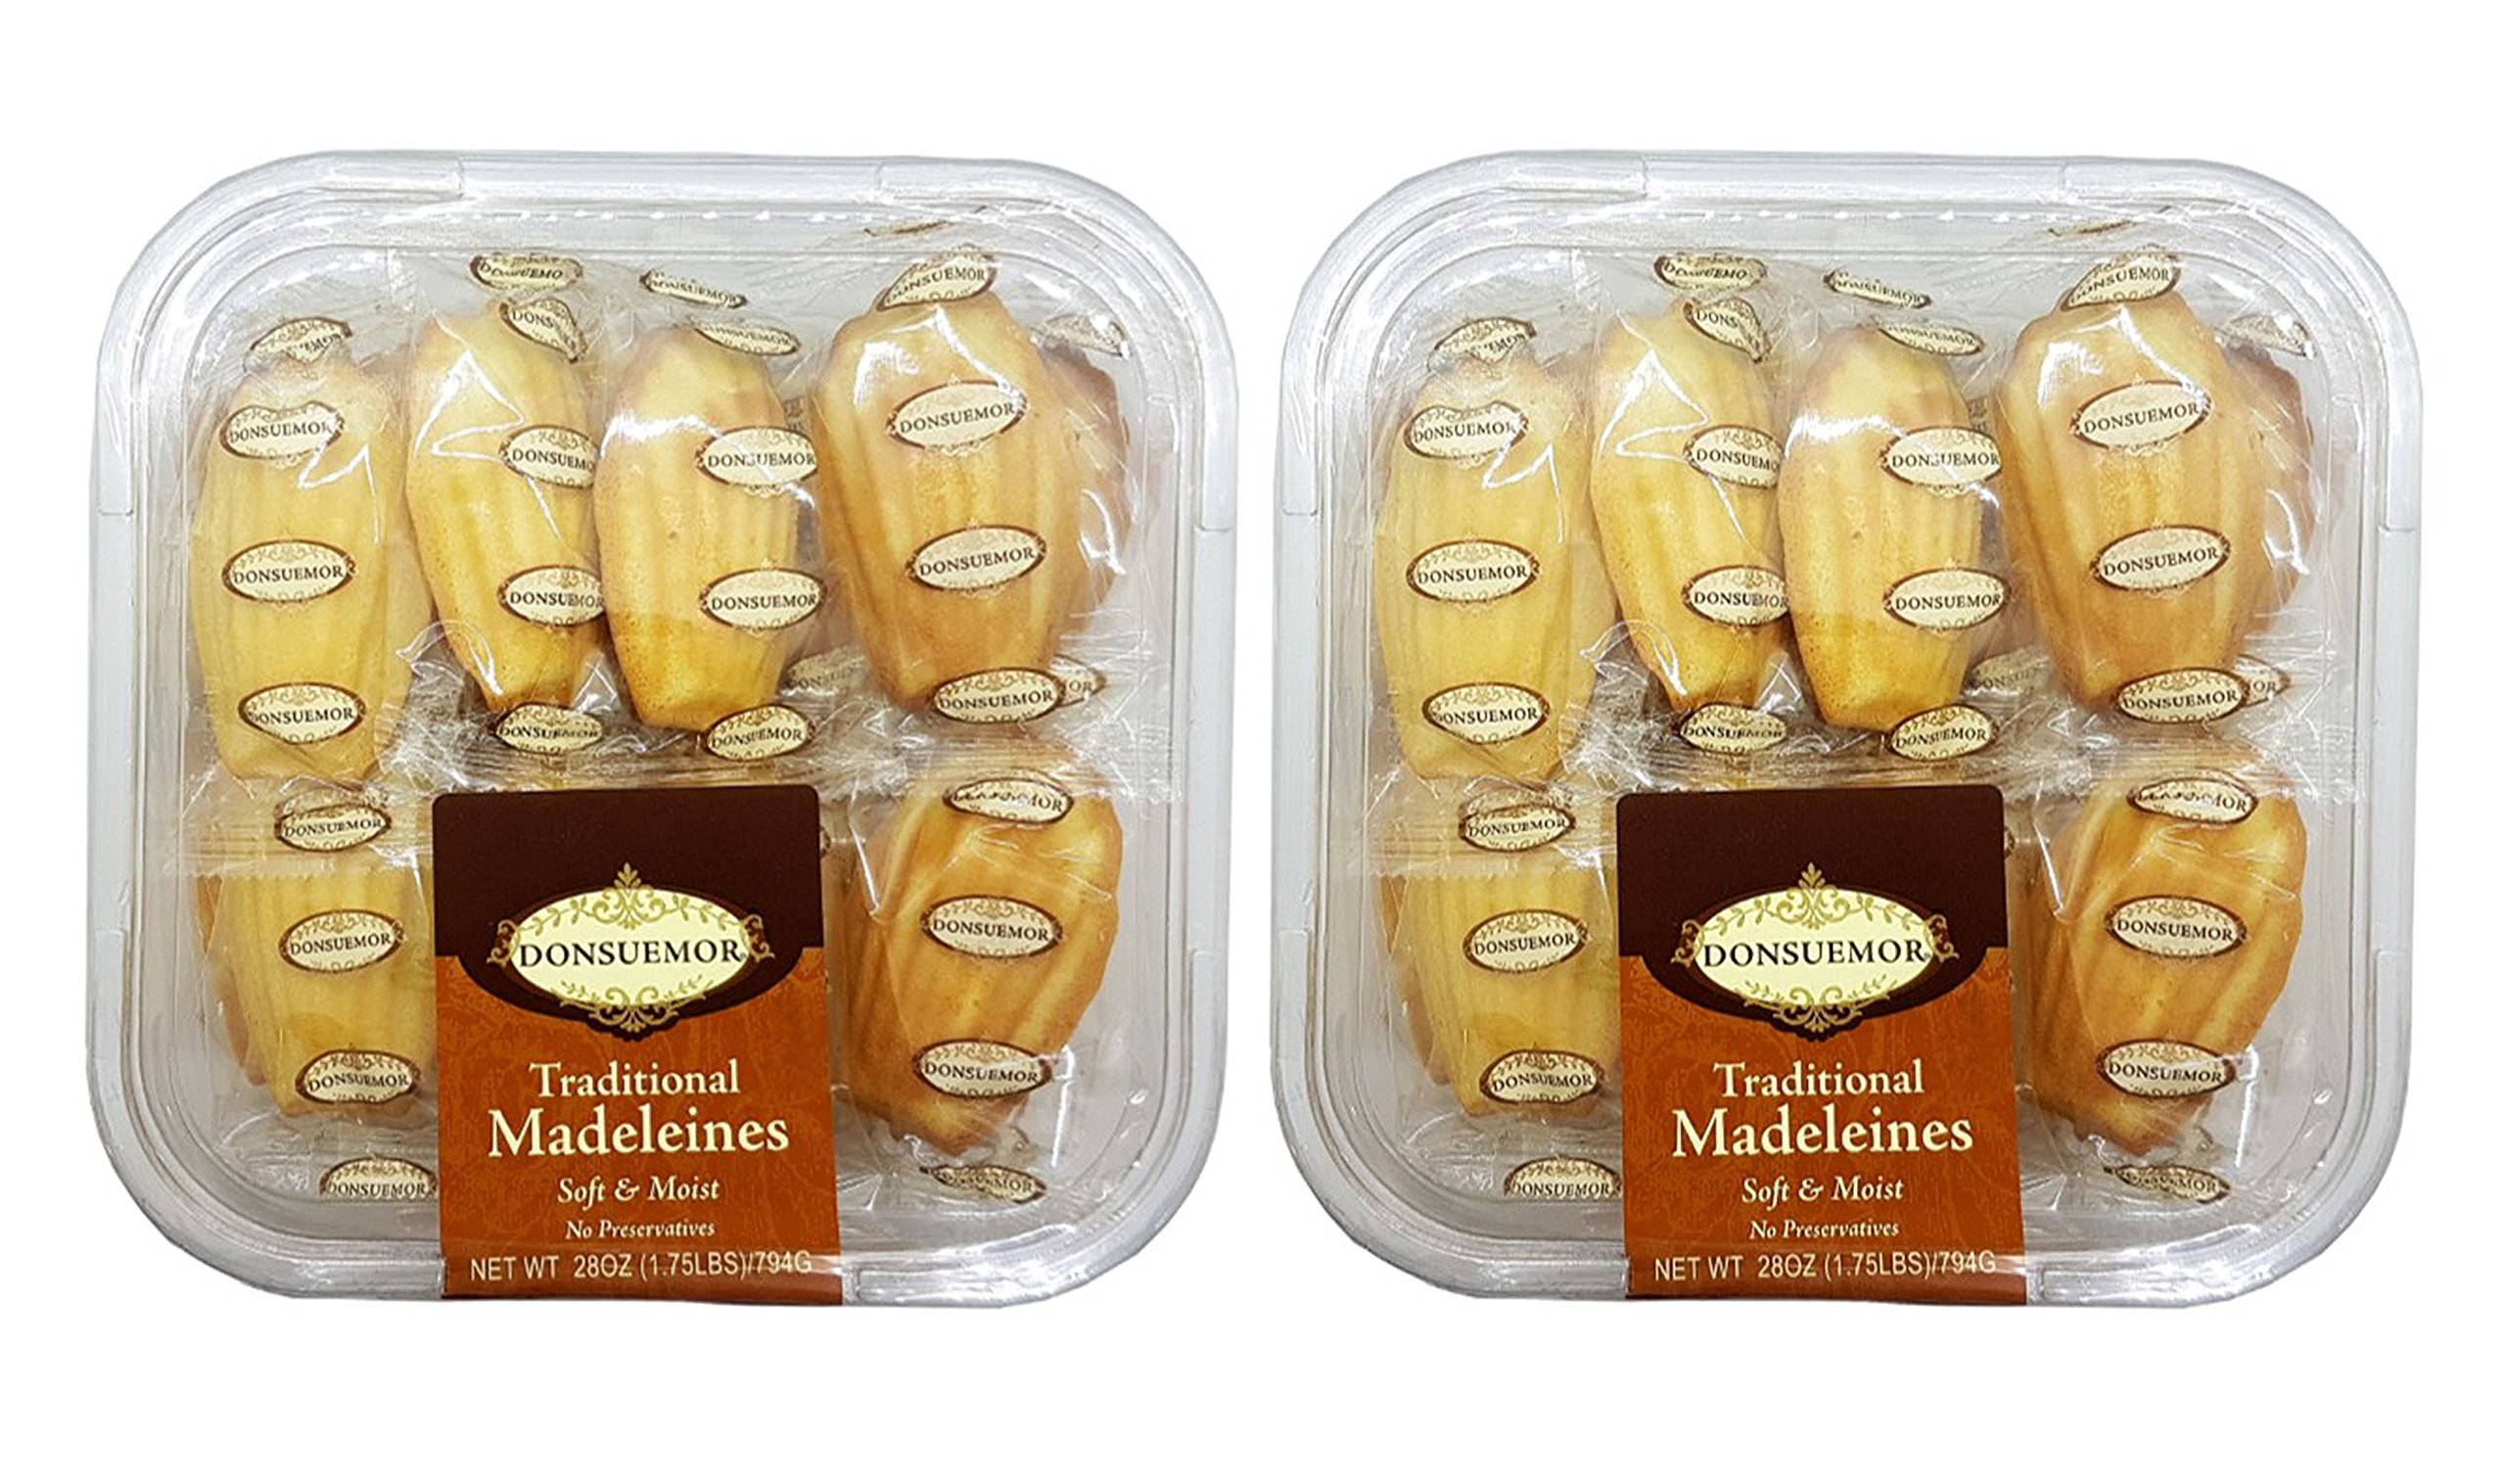 Donsuemor Traditional French Madeleines Individually Wrapped - 28 Oz. Each (Pack of 2) by Donsuemor